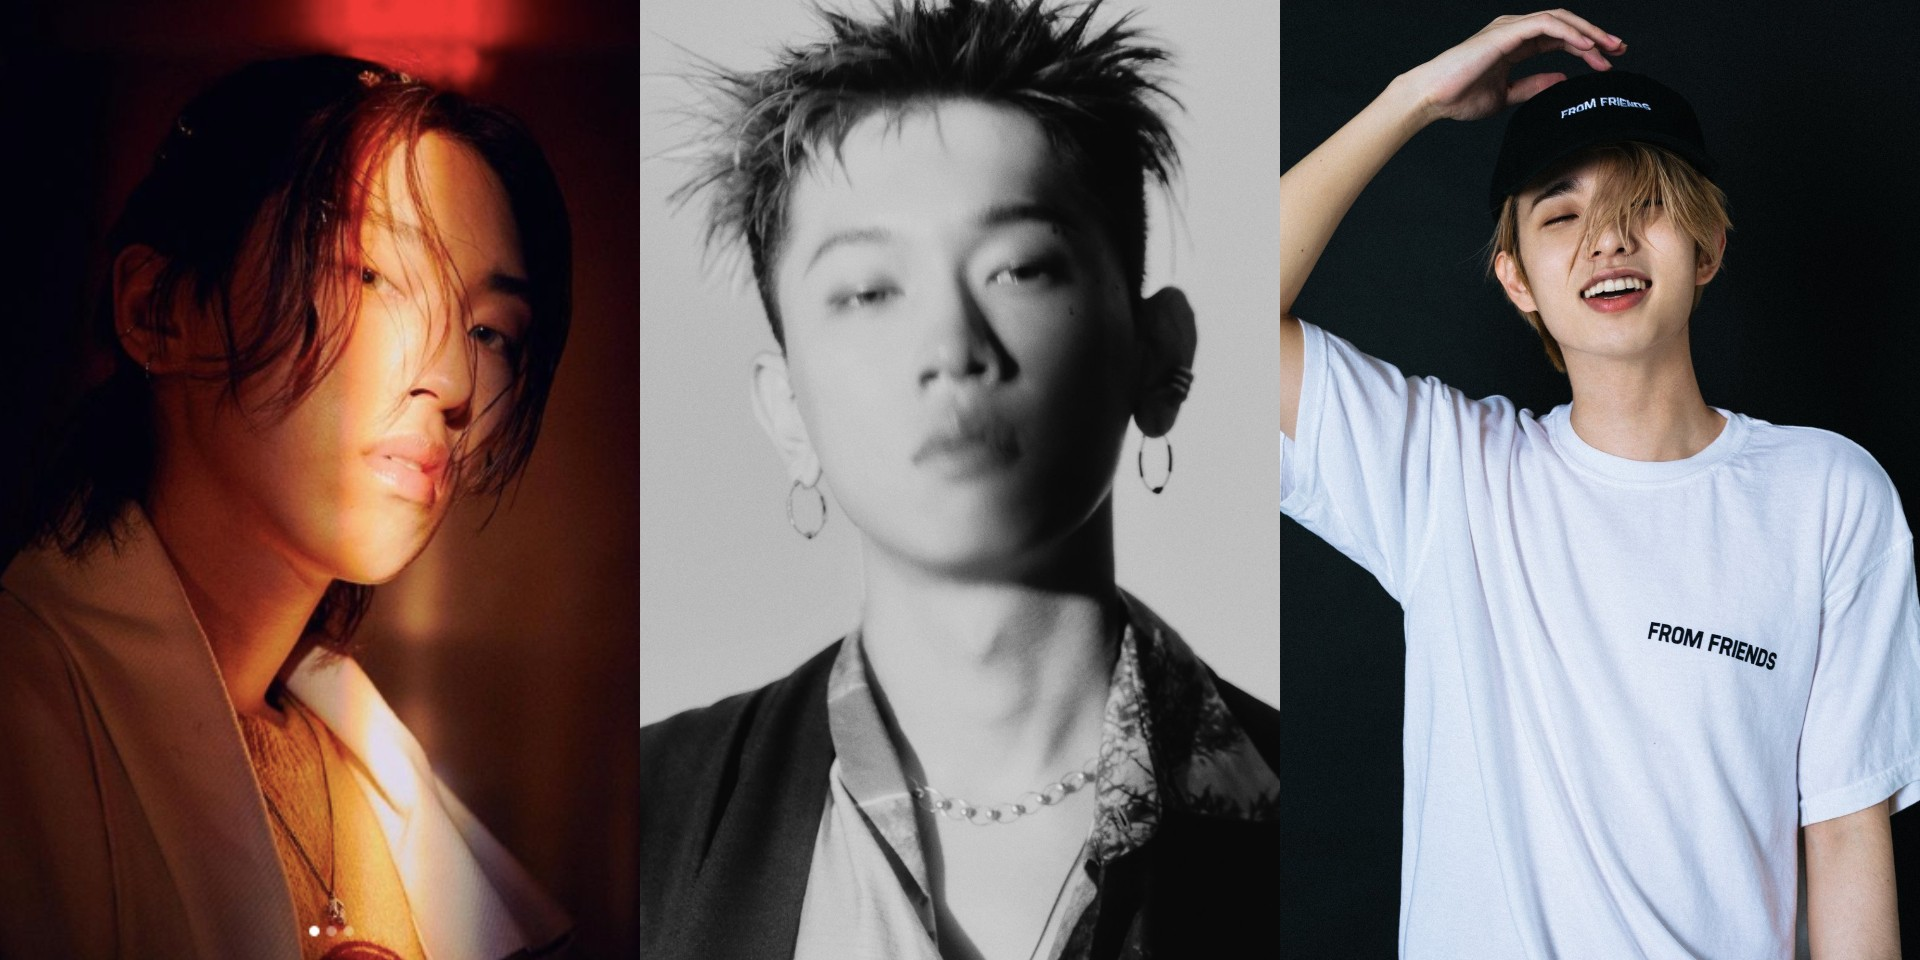 DPR Live releases 'Jam & Butterfly' featuring Crush and DAY6's Jae – listen